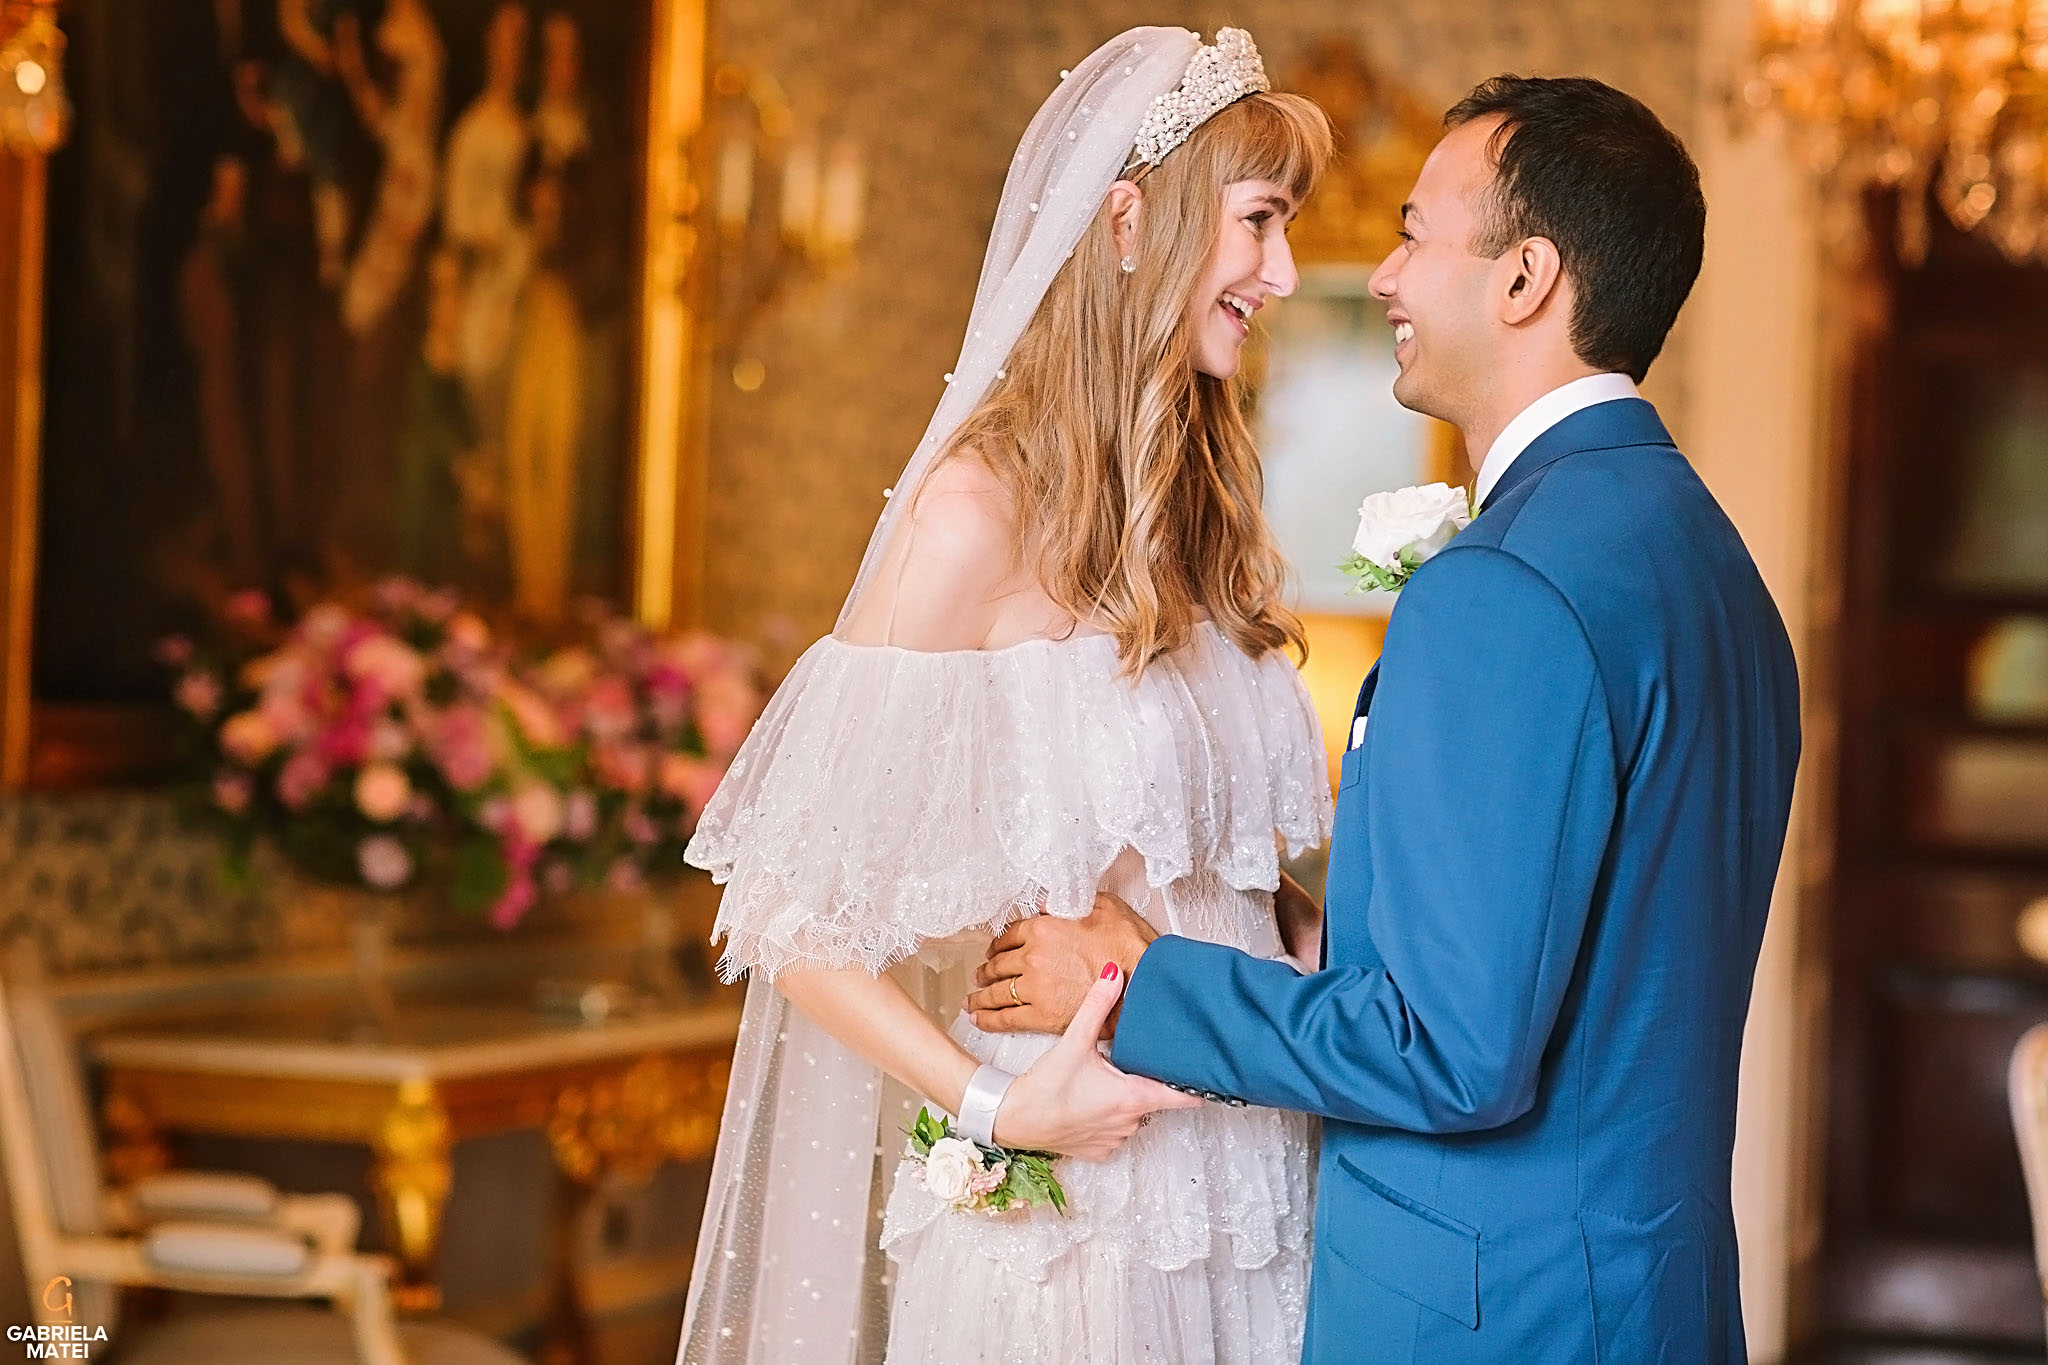 Bride and groom holding hands laughing during couple shoot at The Ritz hotel in London